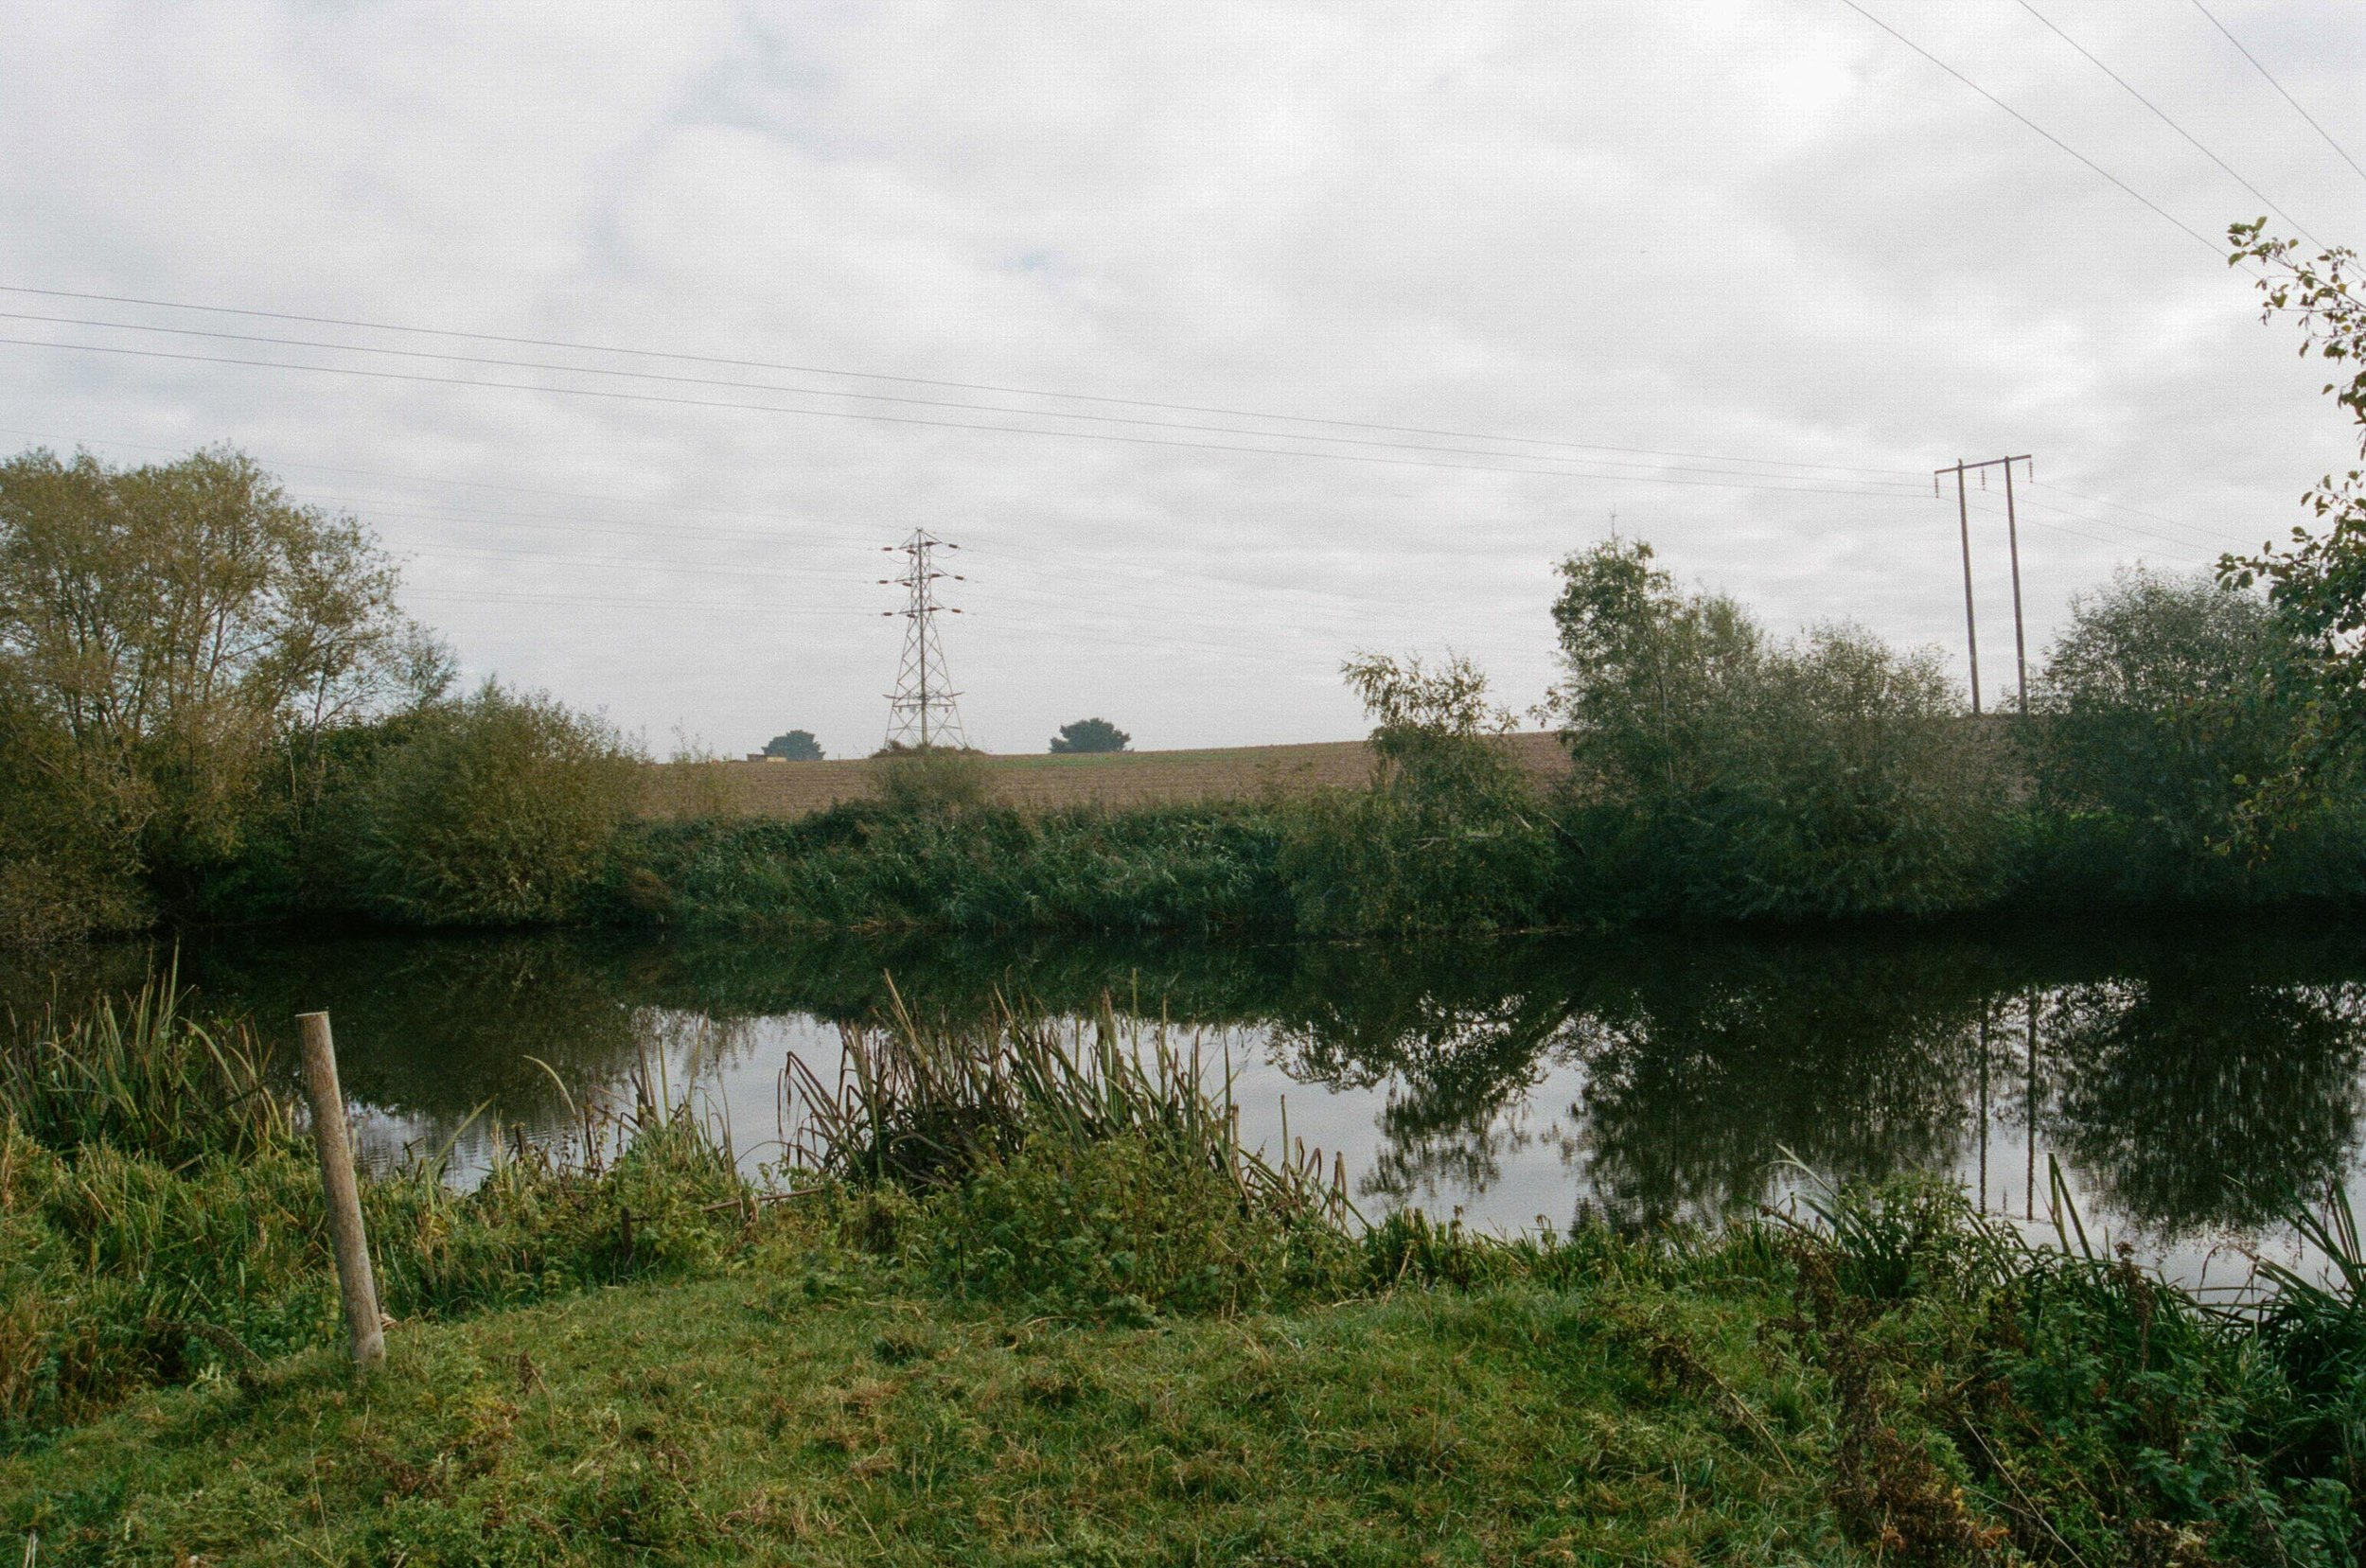 Image from the series  A46